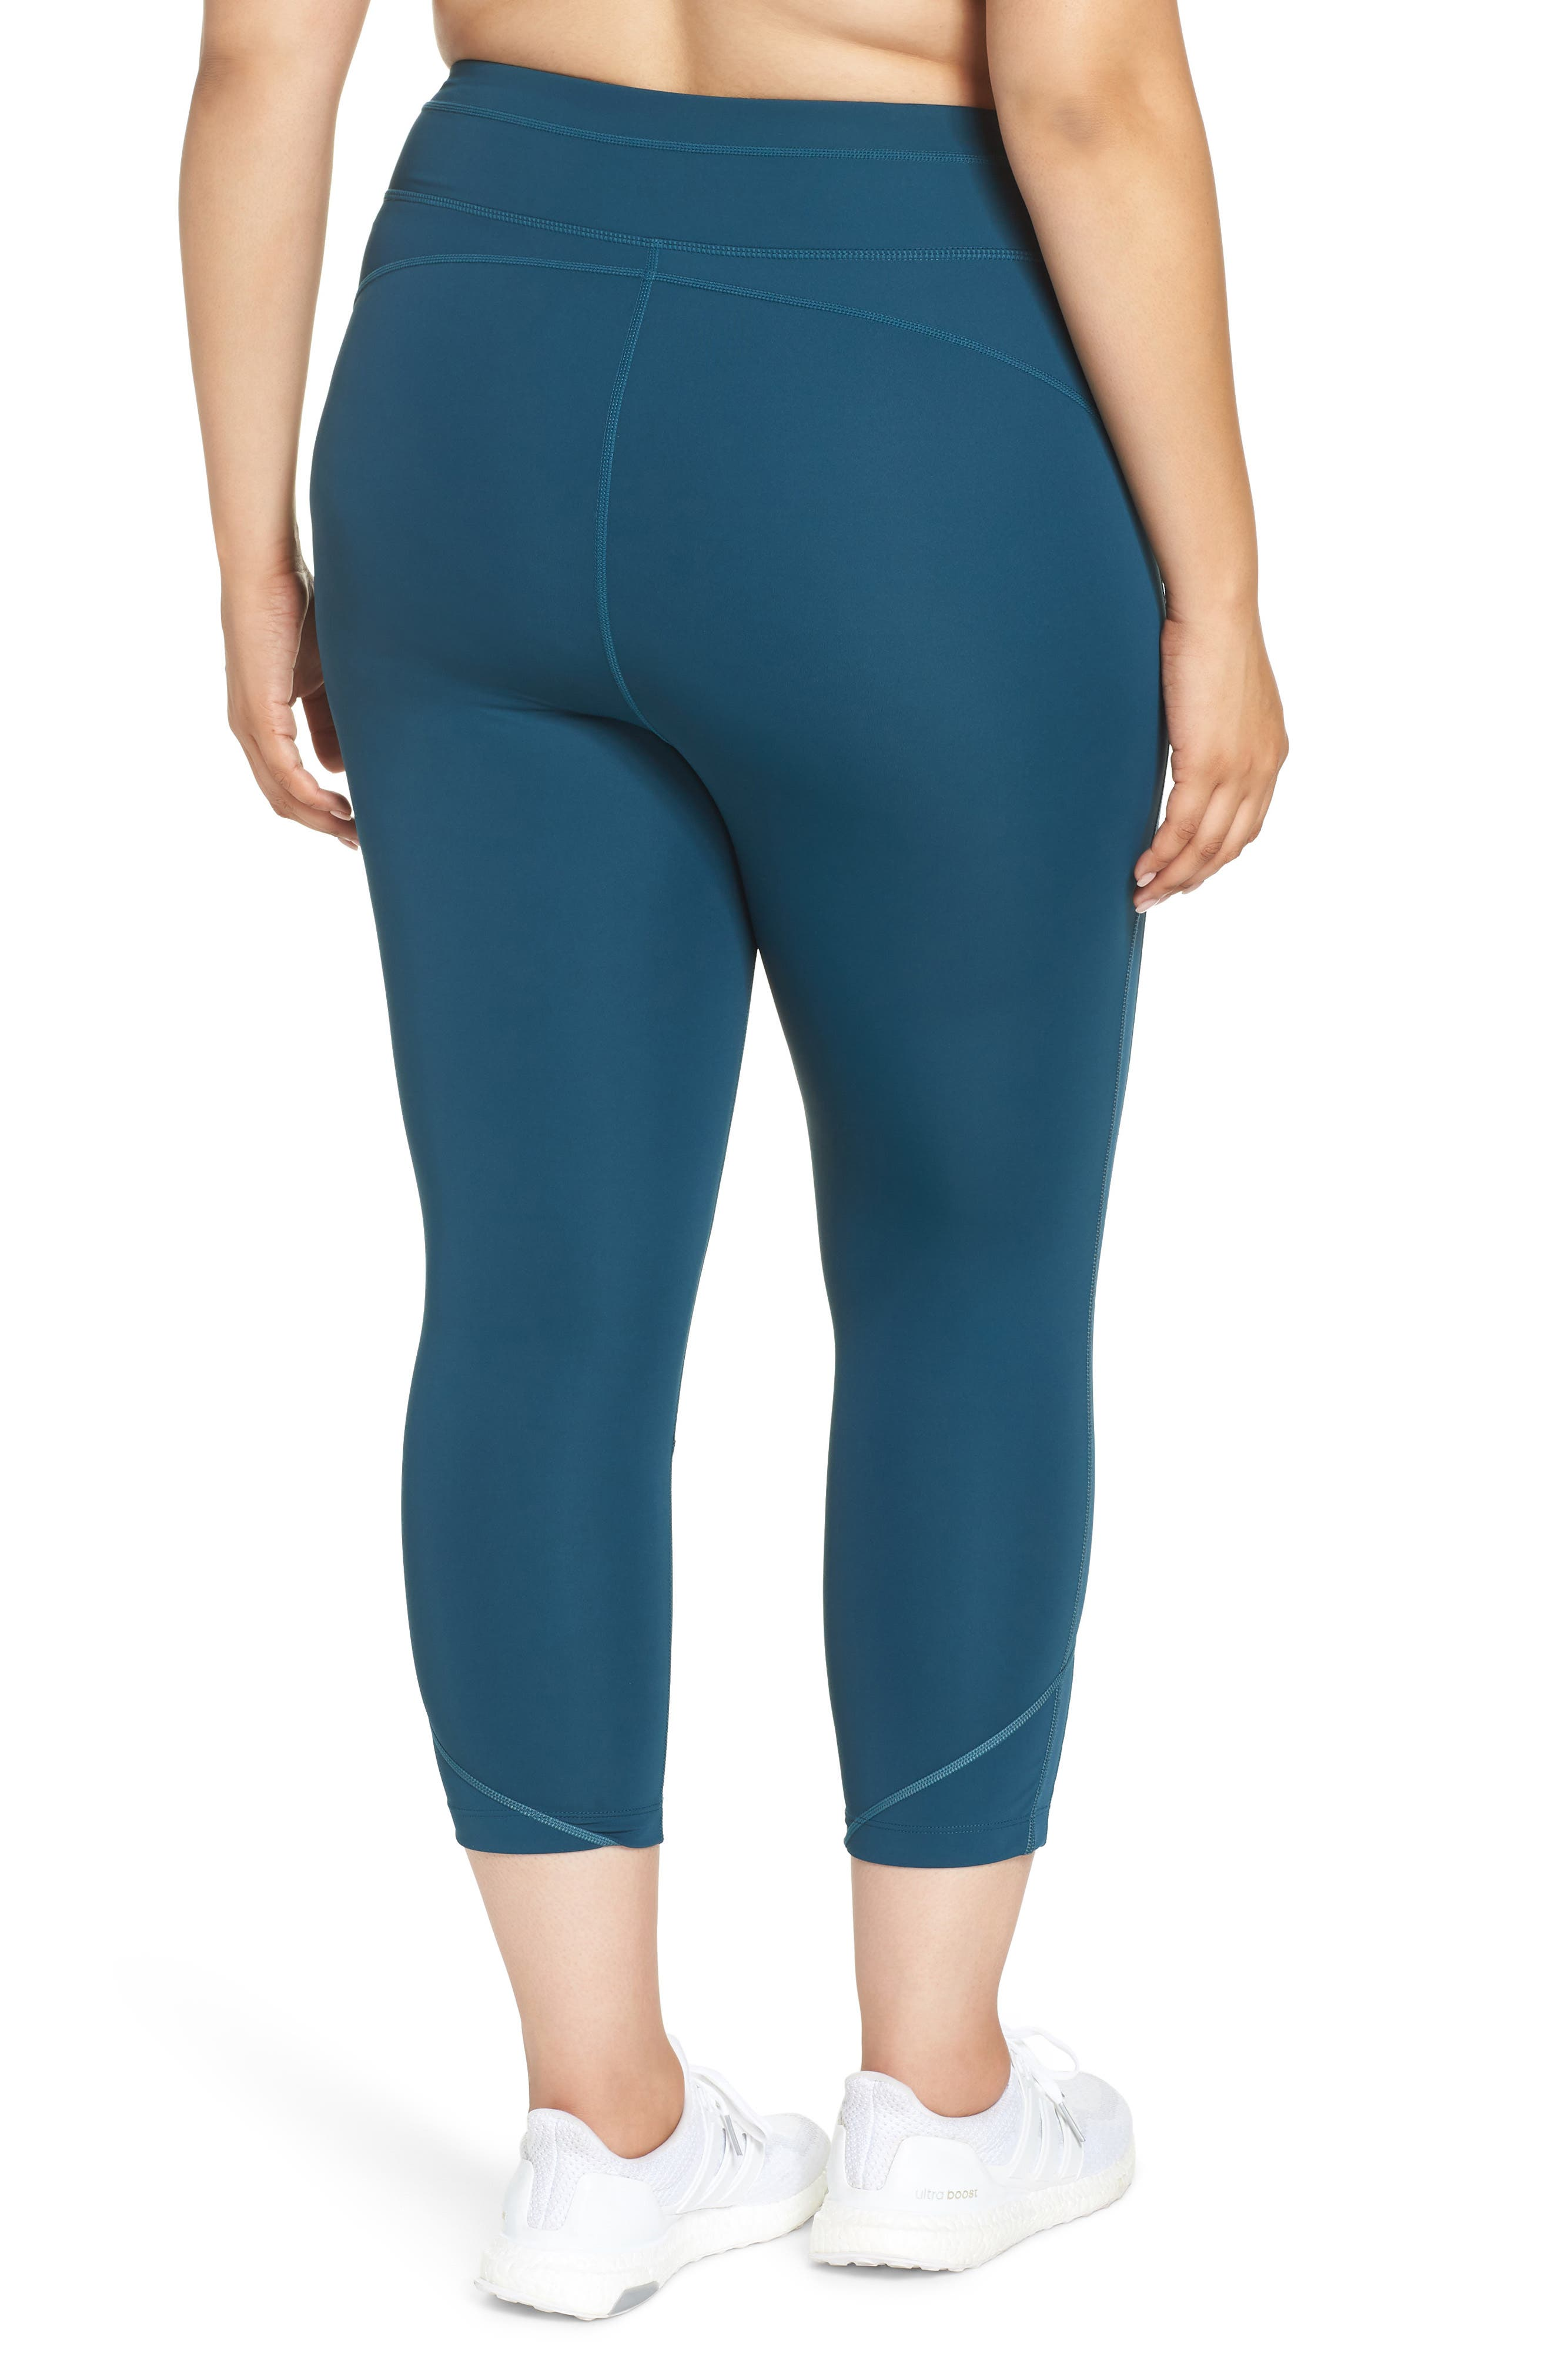 ZELLA,                             All In High Rise Crop Tights,                             Alternate thumbnail 2, color,                             449